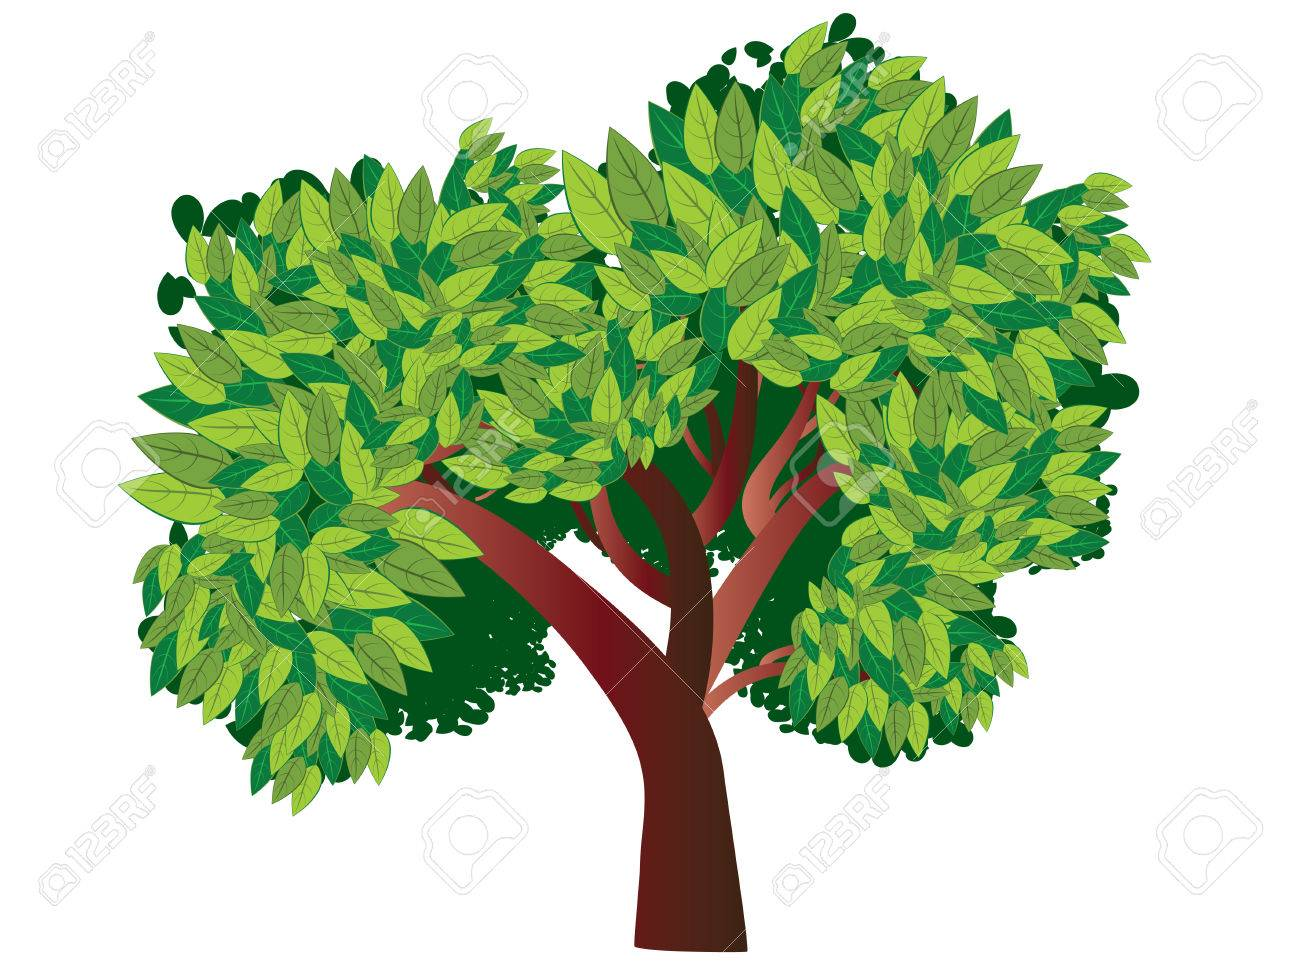 Abstract Cartoon Tree With Stylized Green Leaves Royalty Free Cliparts Vectors And Stock Illustration Image 53711323 Find & download free graphic resources for trees cartoon. abstract cartoon tree with stylized green leaves